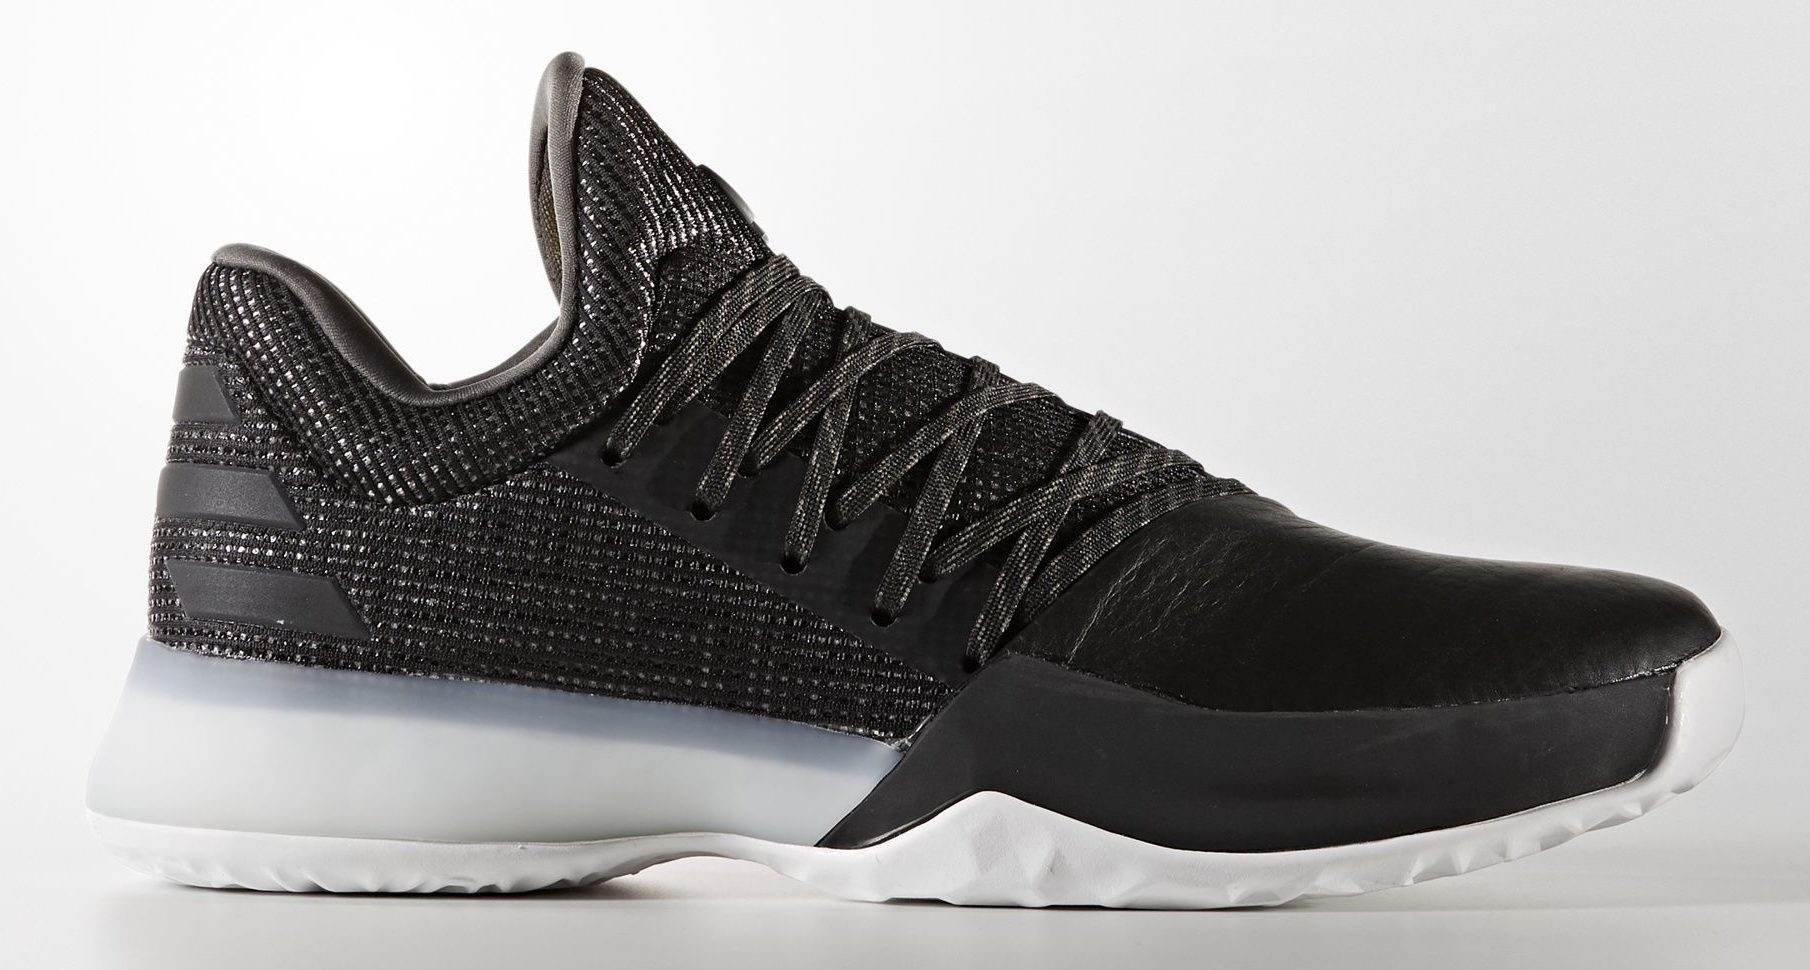 adidas Harden Vol 1 Releasing in Another Colorway  15f20e818